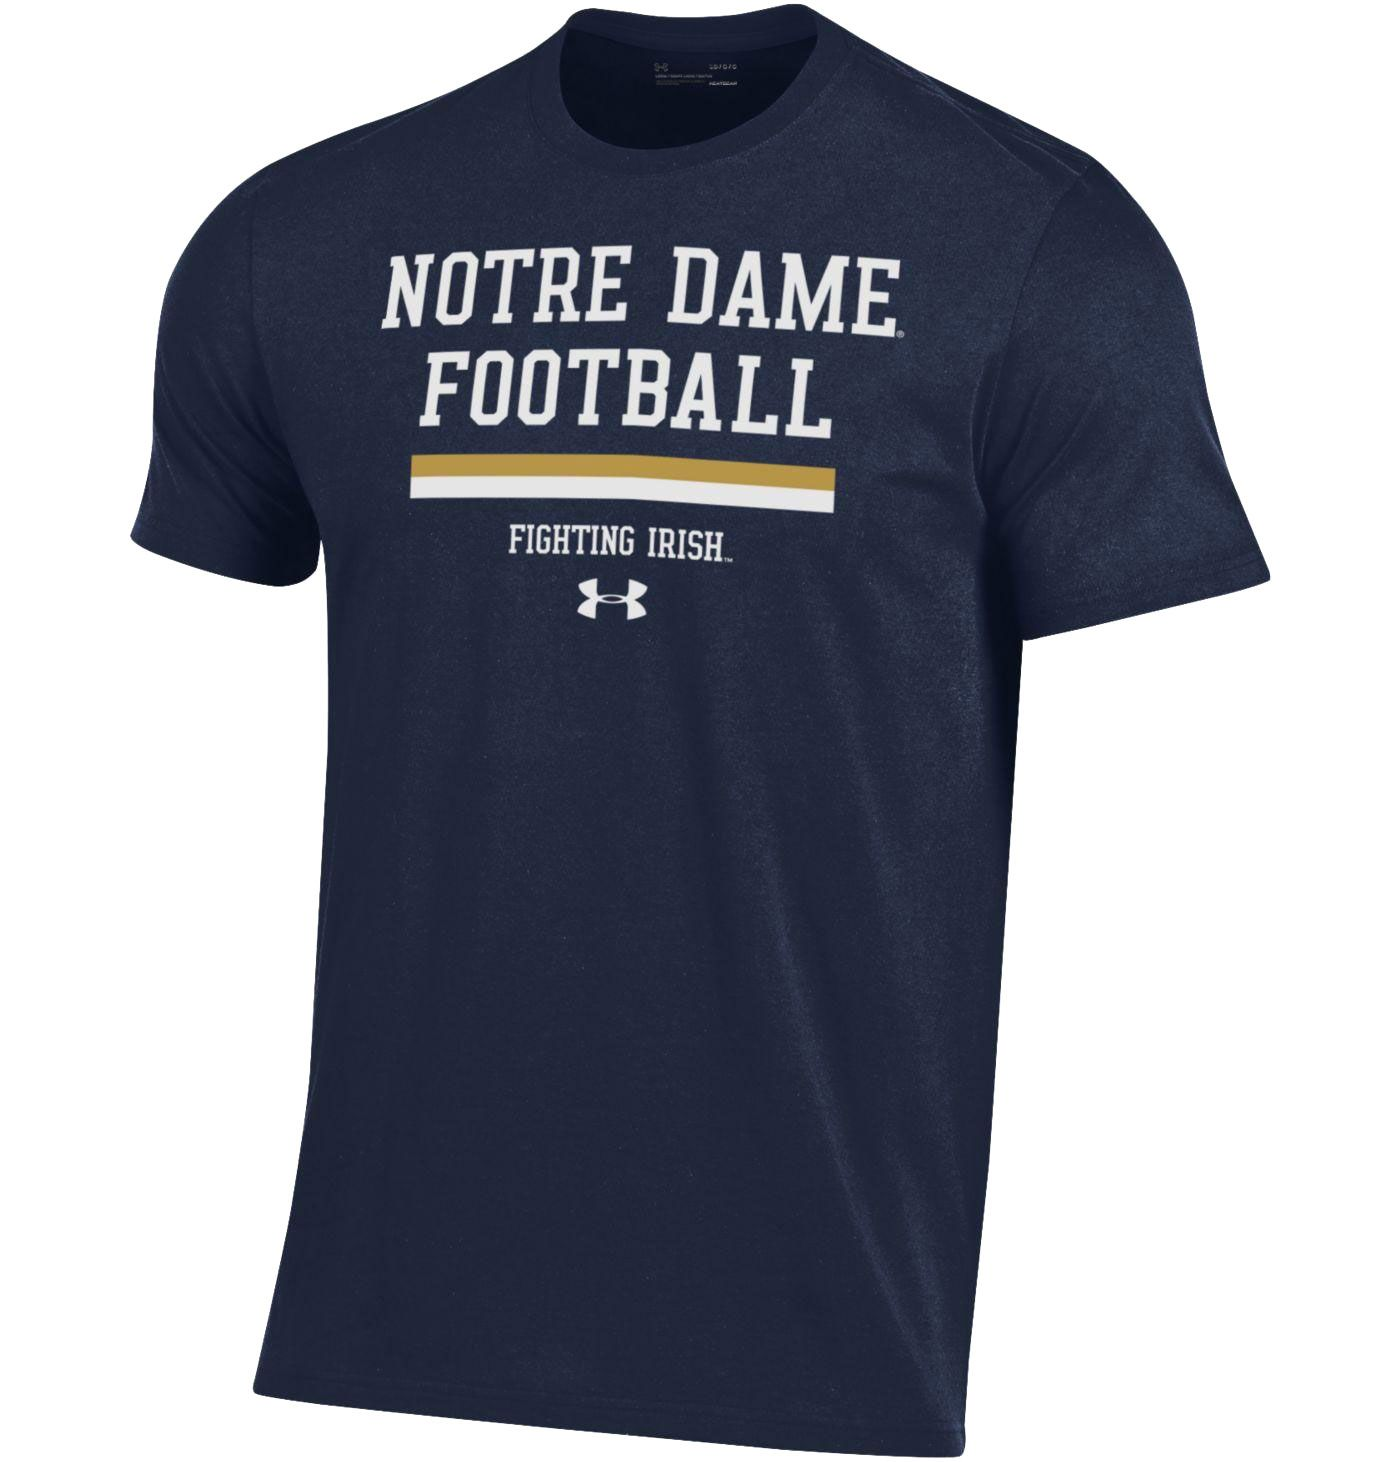 Under Armour Men's Notre Dame Fighting Irish Navy Football Performance Cotton T-Shirt